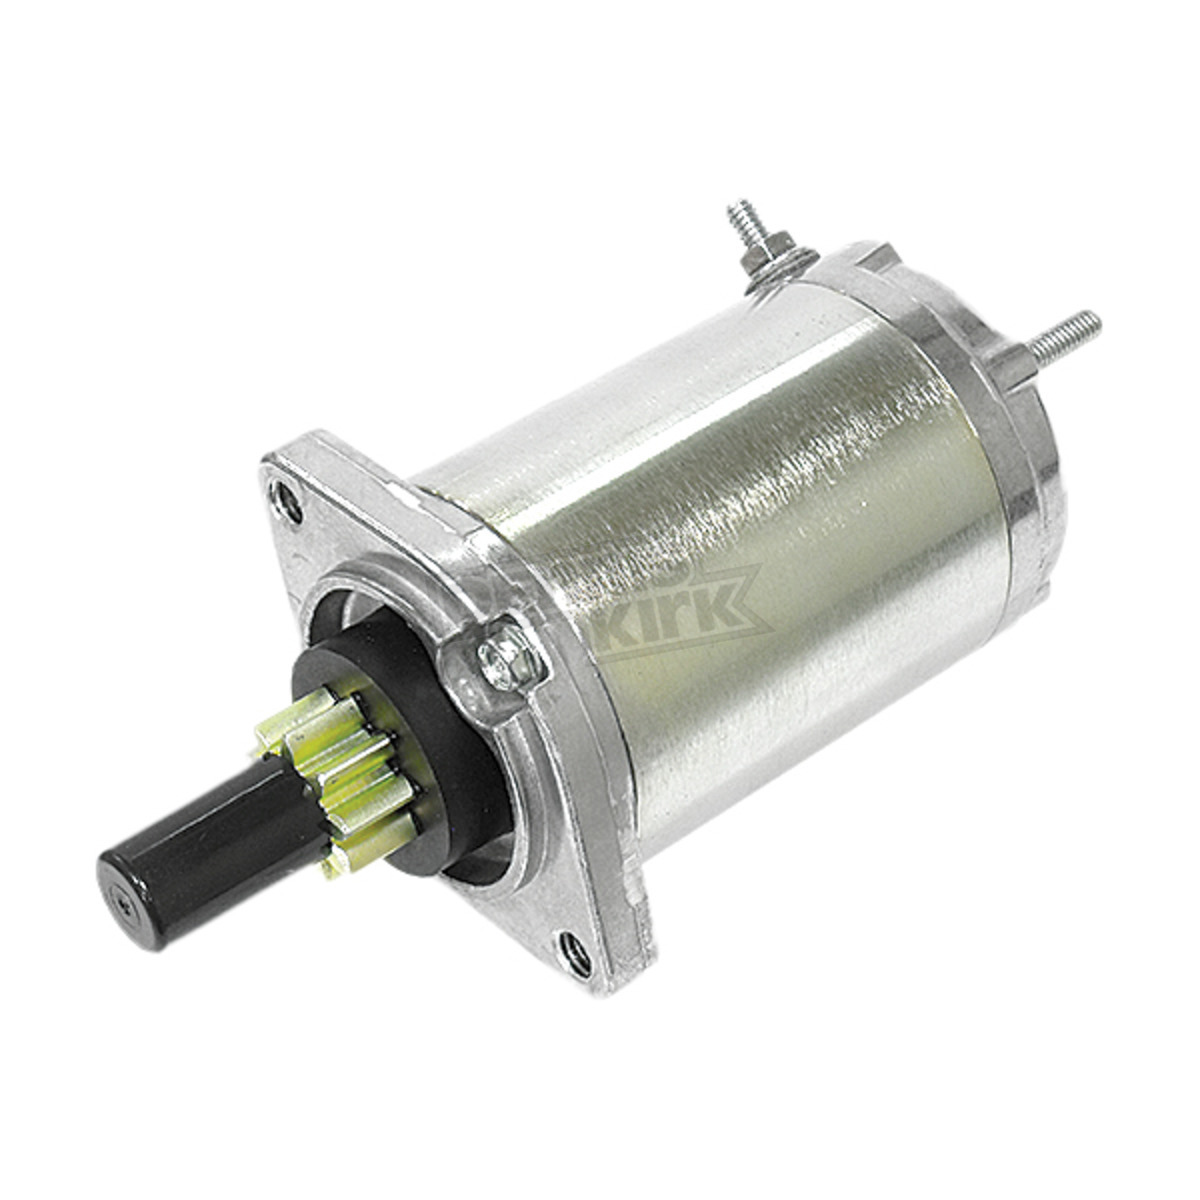 Sports parts inc starter motor sm 01318 snowmobile for Nhd inc motor starter